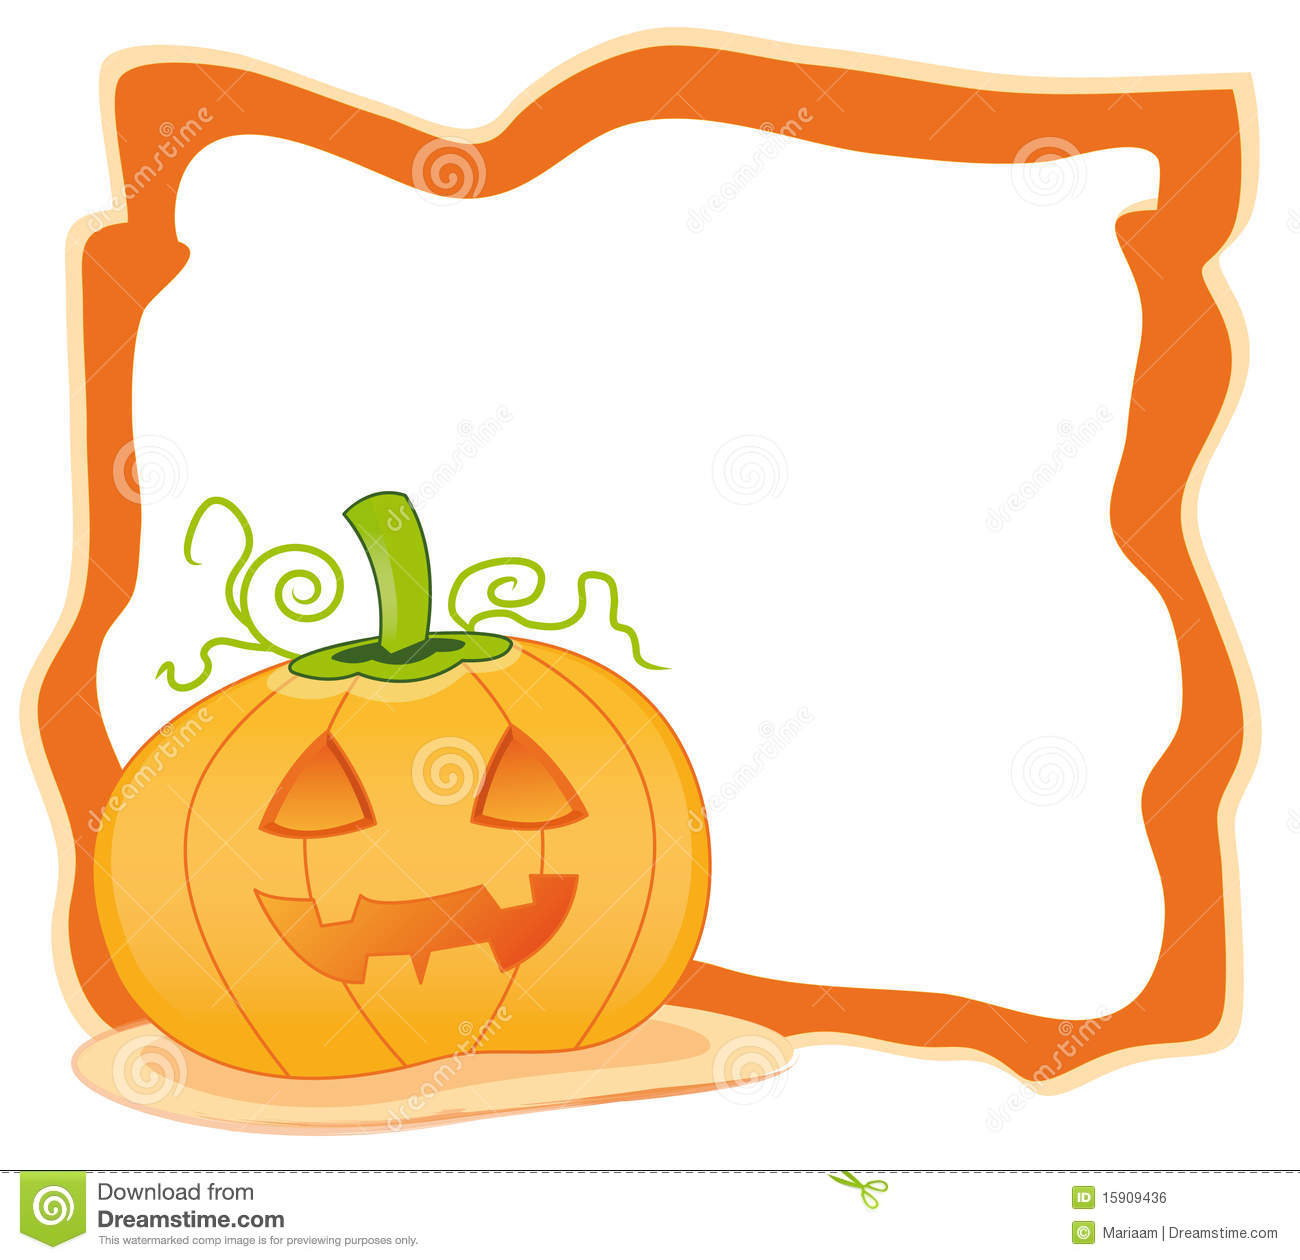 Pumpkin Frame stock vector. Illustration of growing, holidays - 2869476